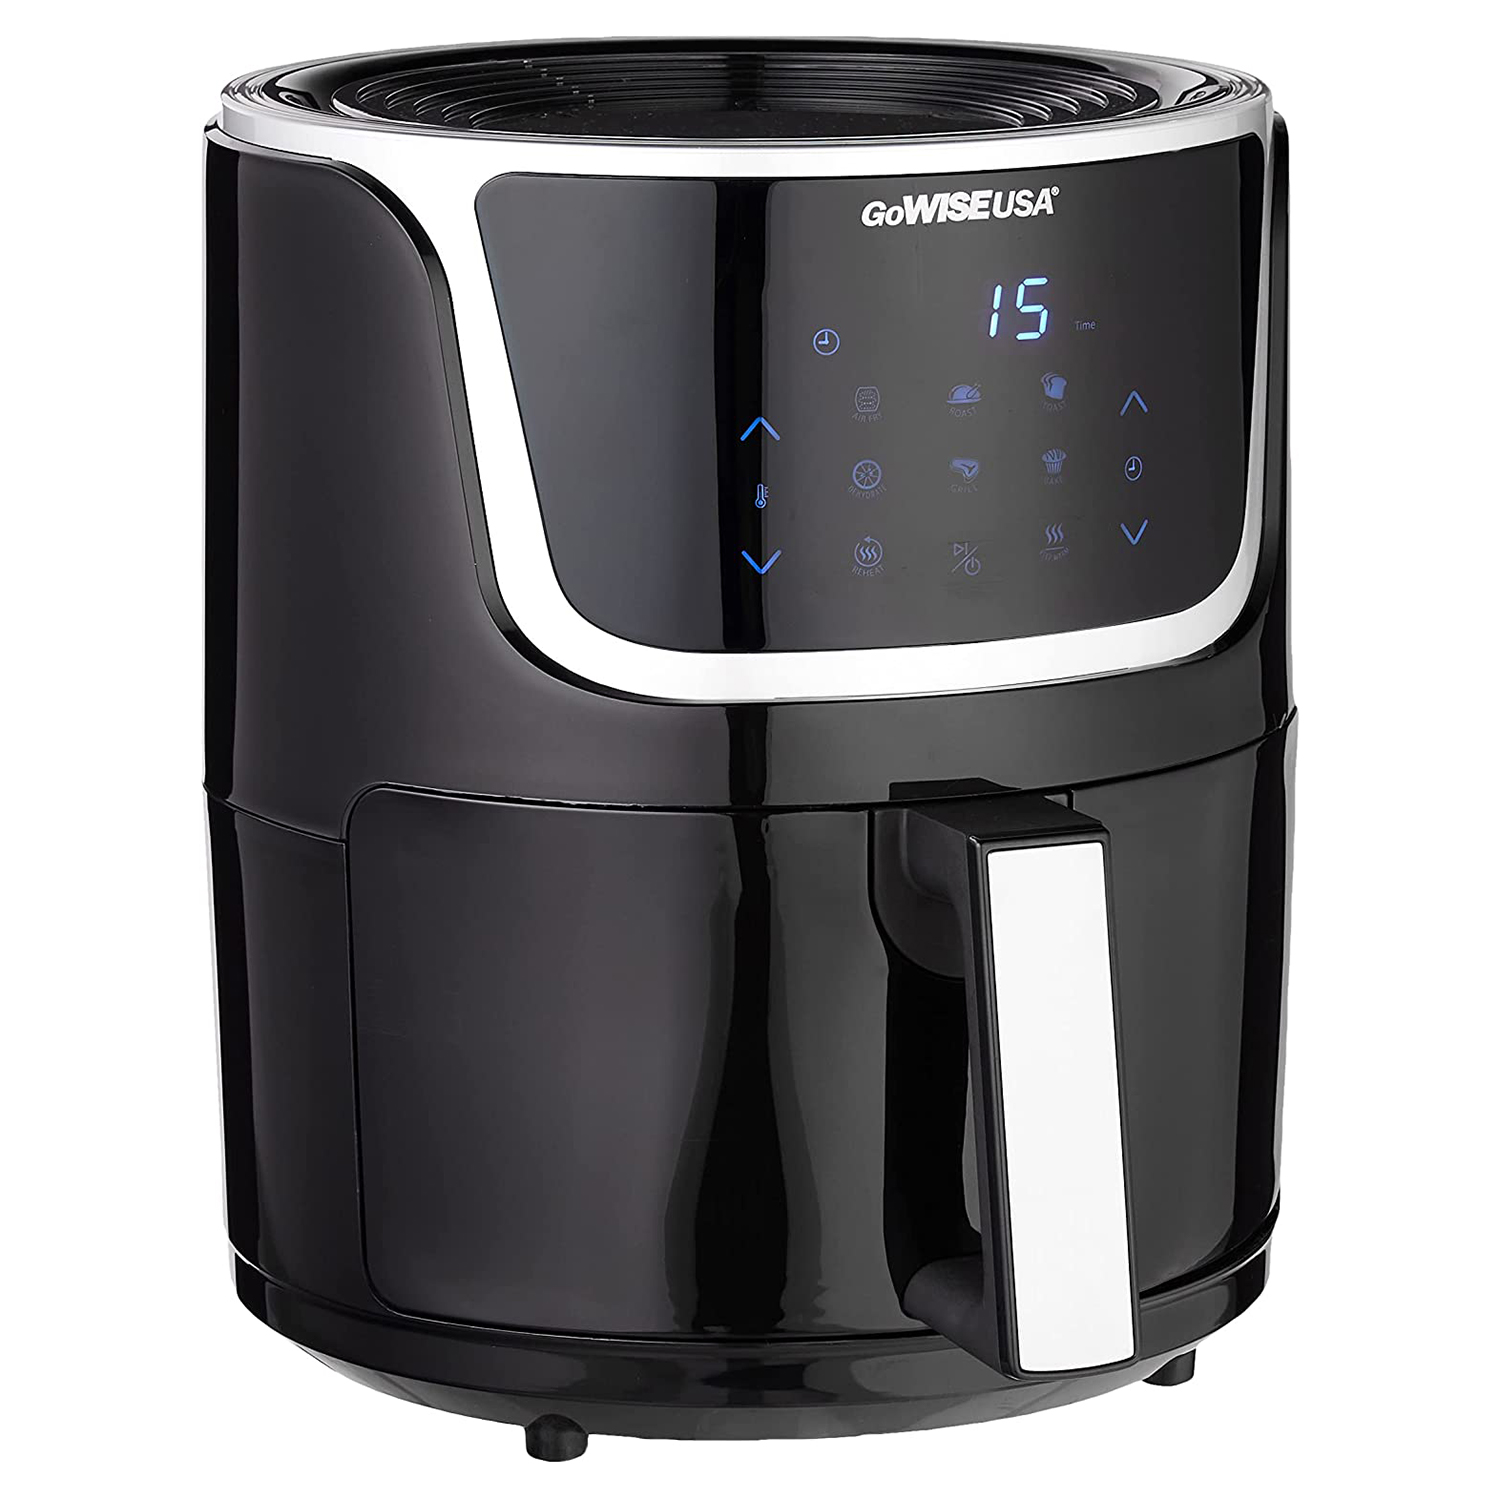 GoWISE USA GW22966 Fryer & Dehydrator Electric Air Fryer with Digital Touchscreen